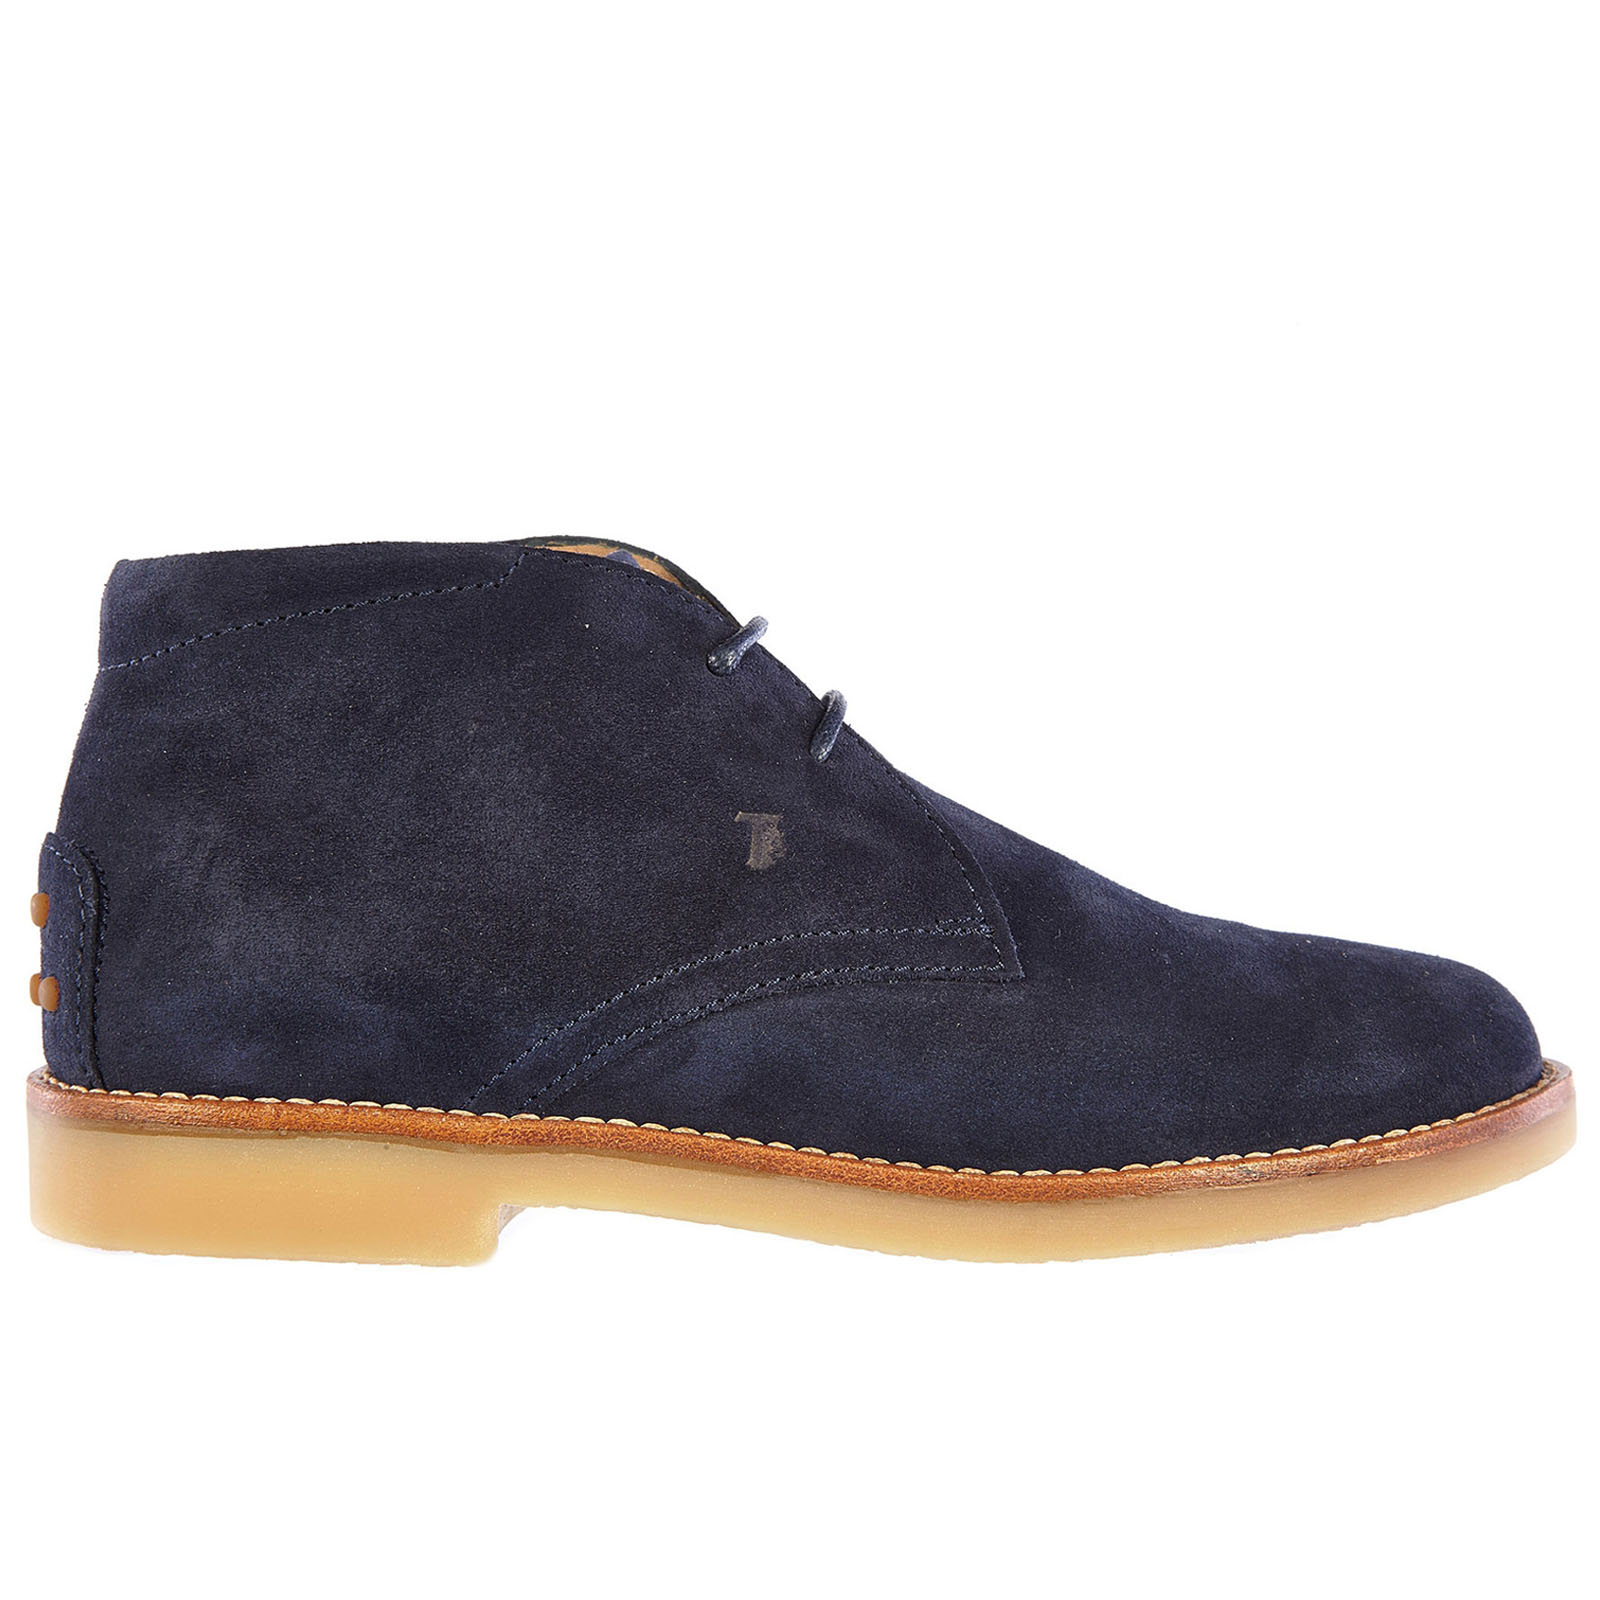 Boys suede leather child desert boots ankle boots